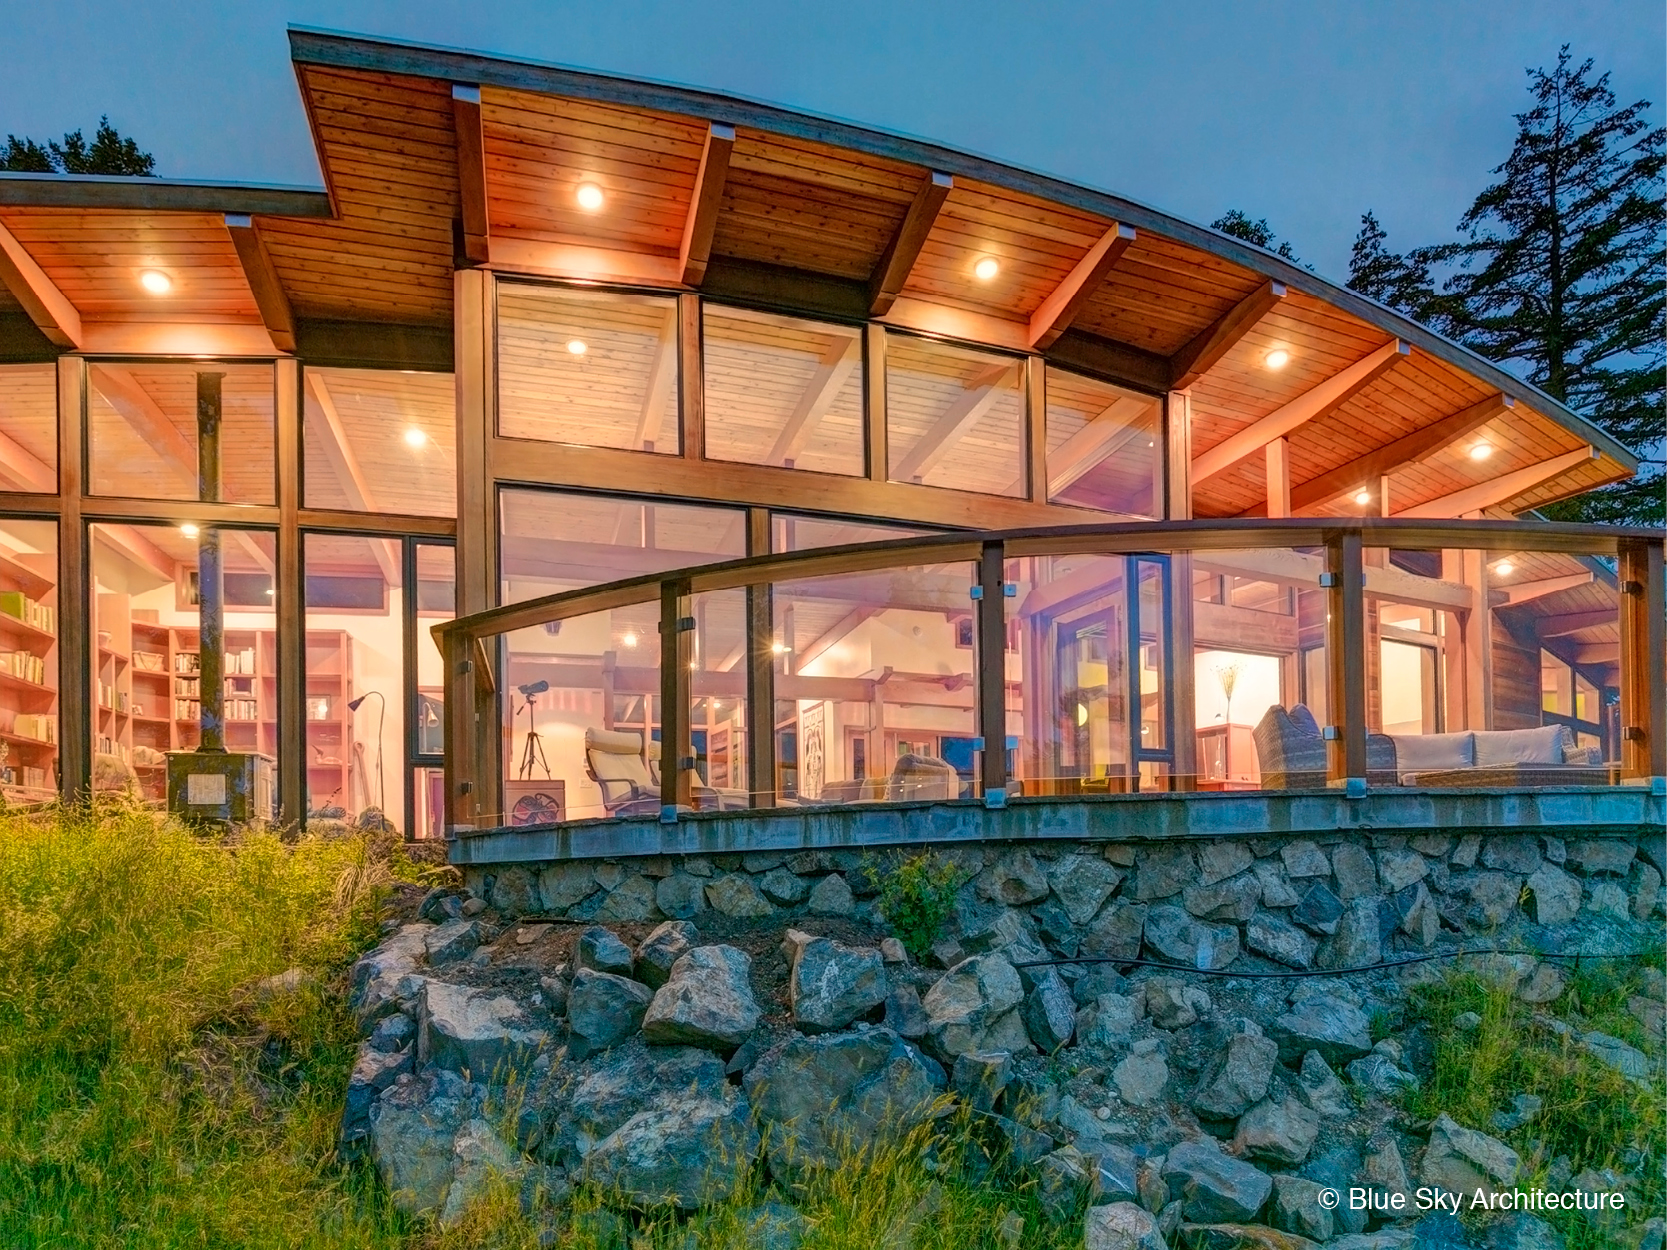 Exterior heavy timber framing on island residential design